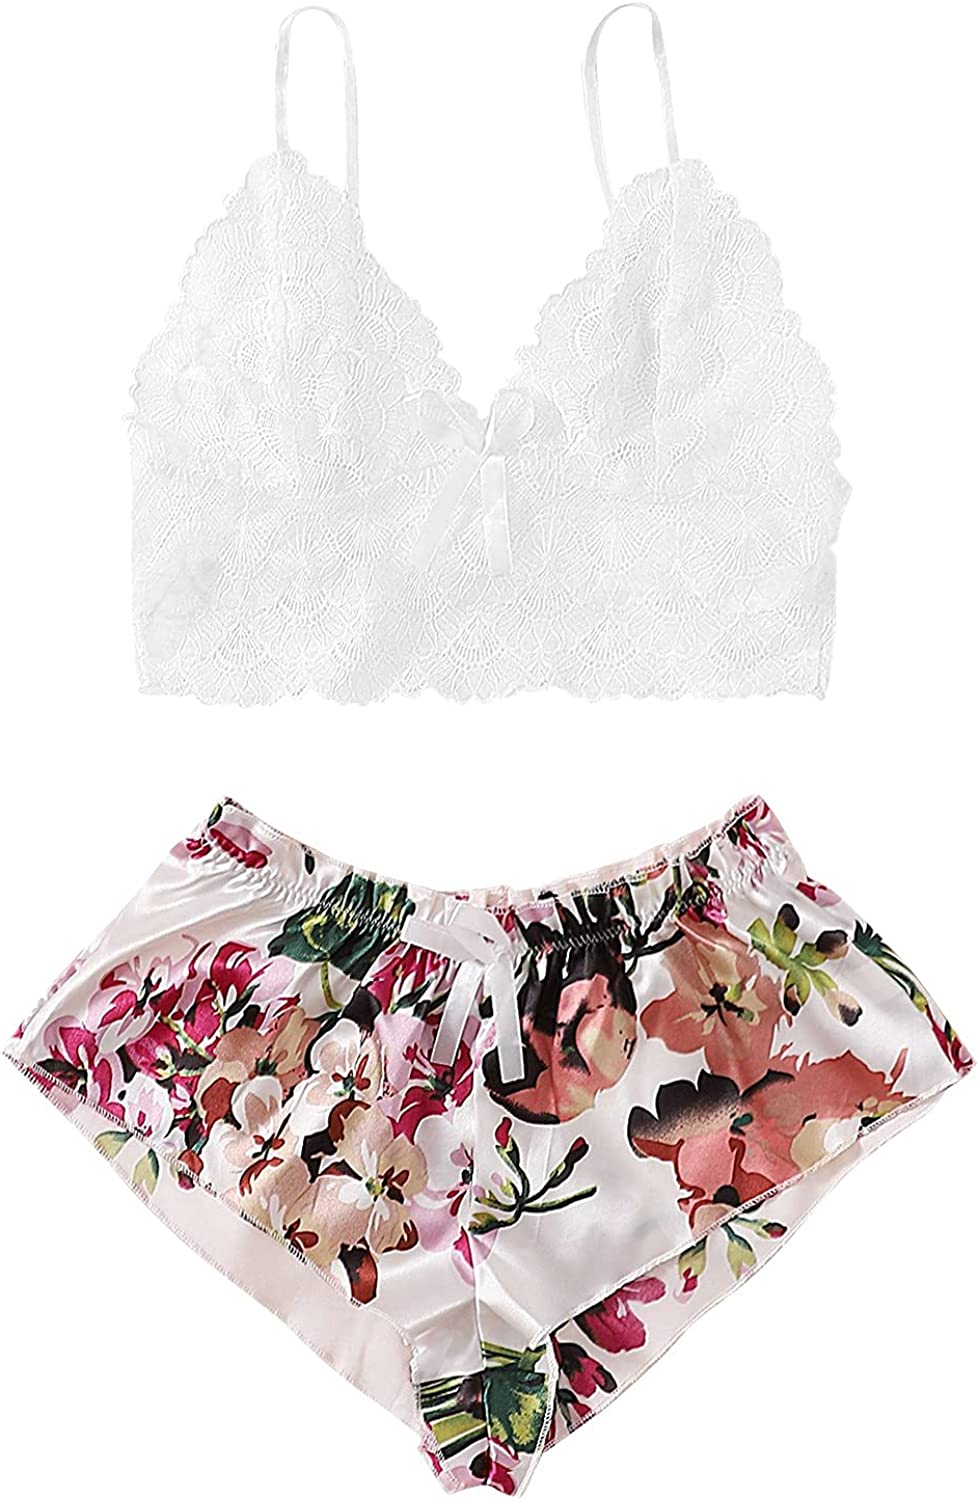 Forwelly Women's Shorts Pajamas Set Sexy Lace Tank Top Bra with Floral Short Pant Lingerie Nightwear Sleepwear